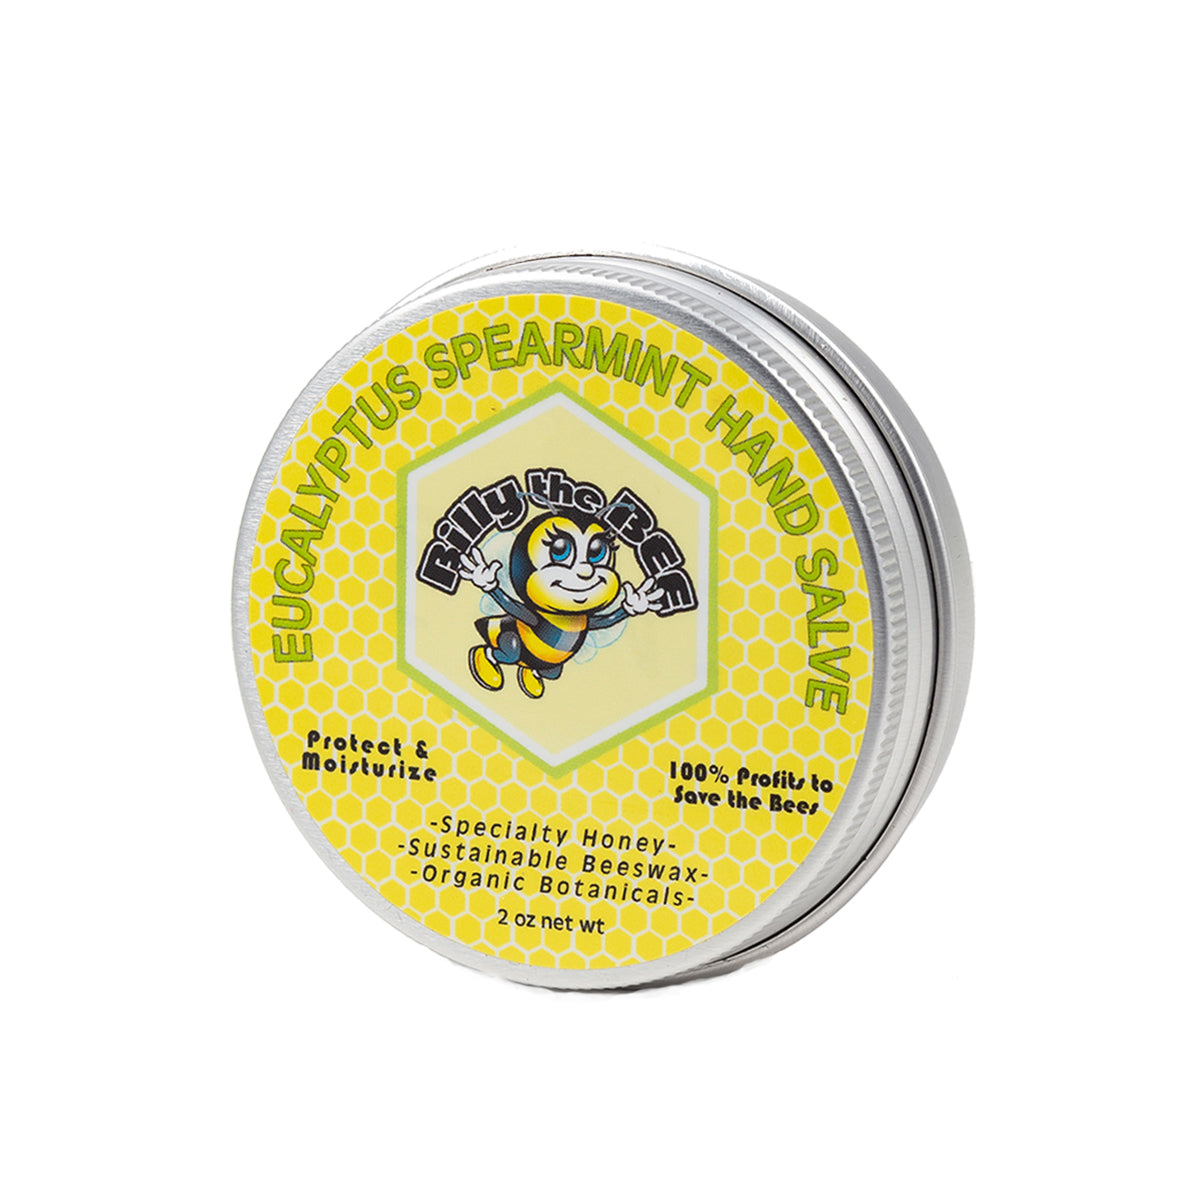 Eucalyptus Spearmint Hand Salve from Billy the Bee brand